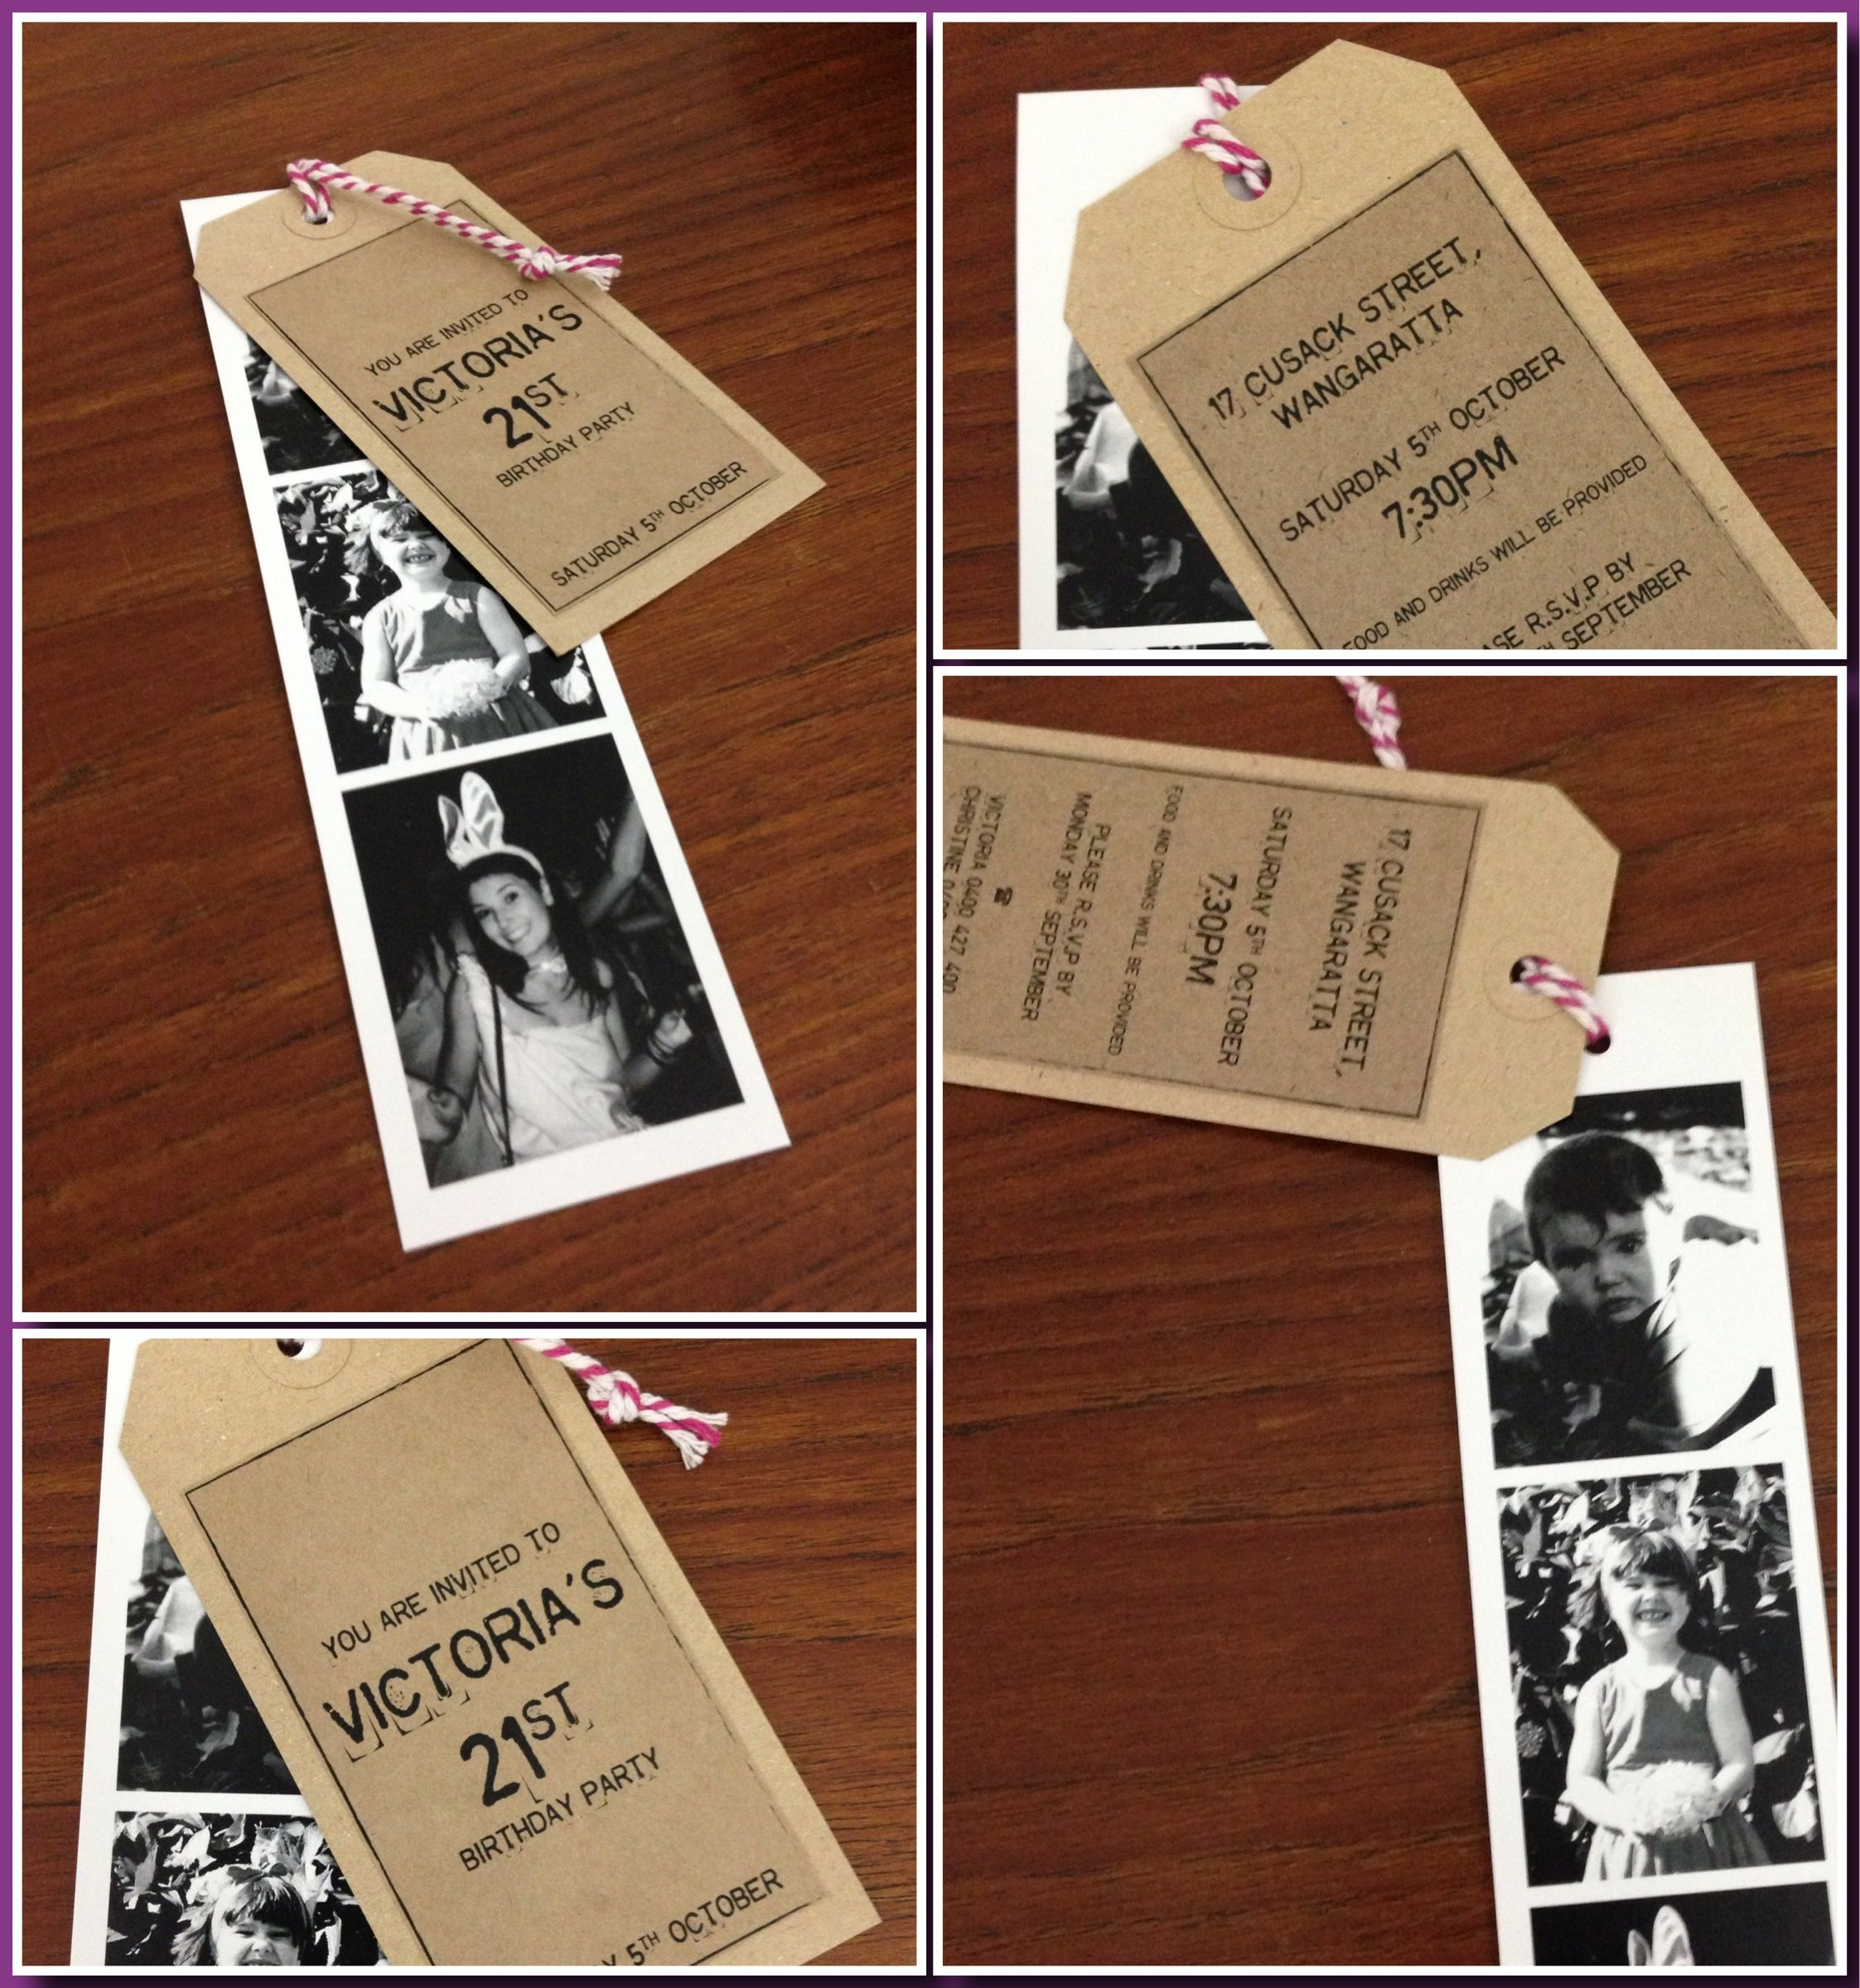 21st invitation | Projects to Try | Pinterest | 21st, 21st birthday ...